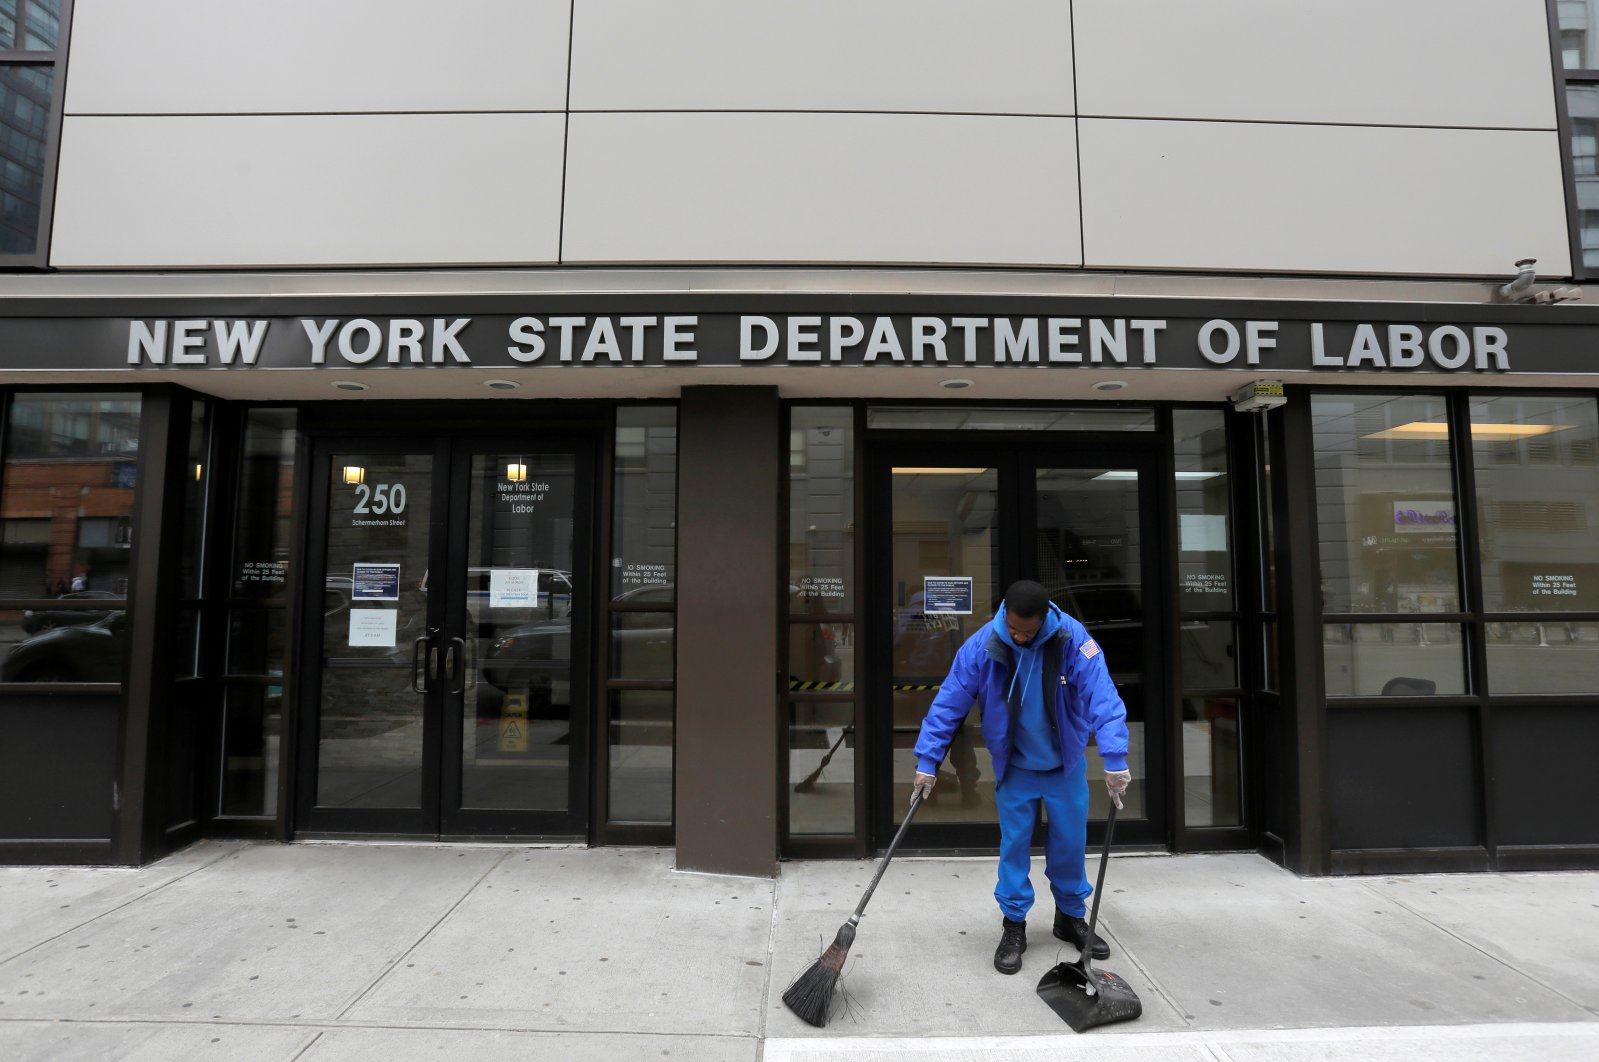 A person sweeps outside the entrance of the New York State Department of Labor offices, which is closed to the public due to the coronavirus outbreak, in the Brooklyn borough of New York City, U.S., March 20, 2020. (Reuters Photo)